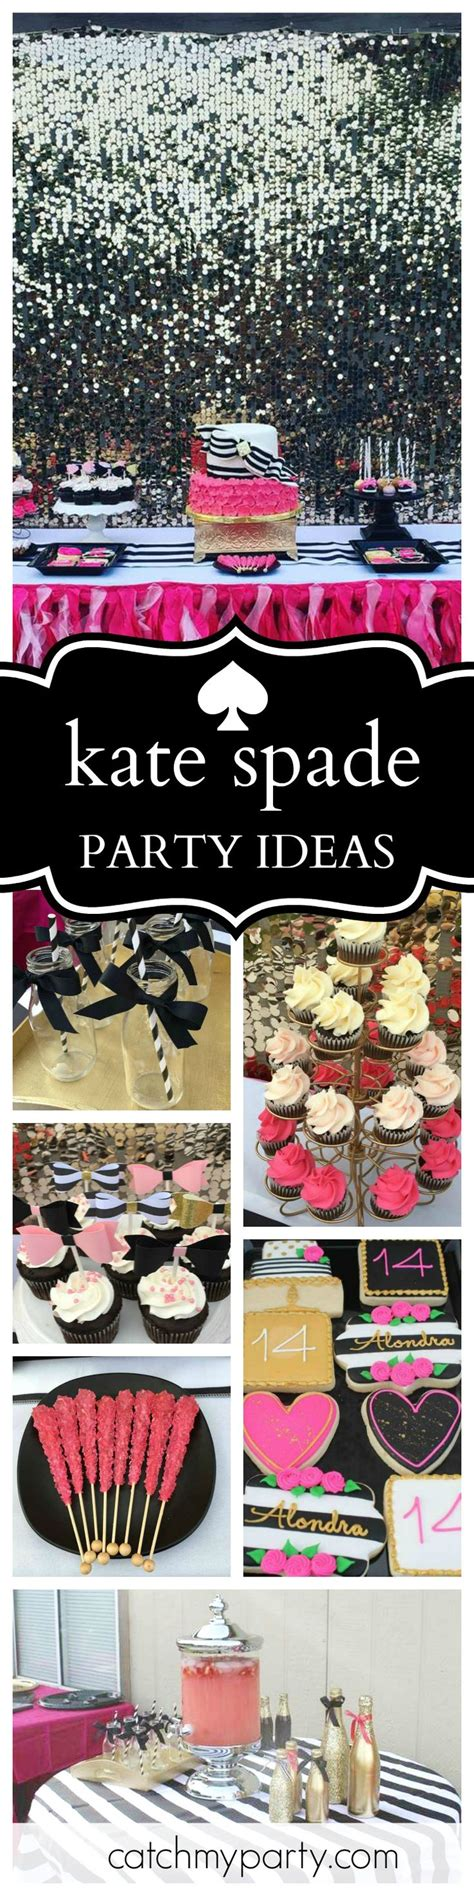 google theme kate spade 134 best images about kate spade party ideas on pinterest